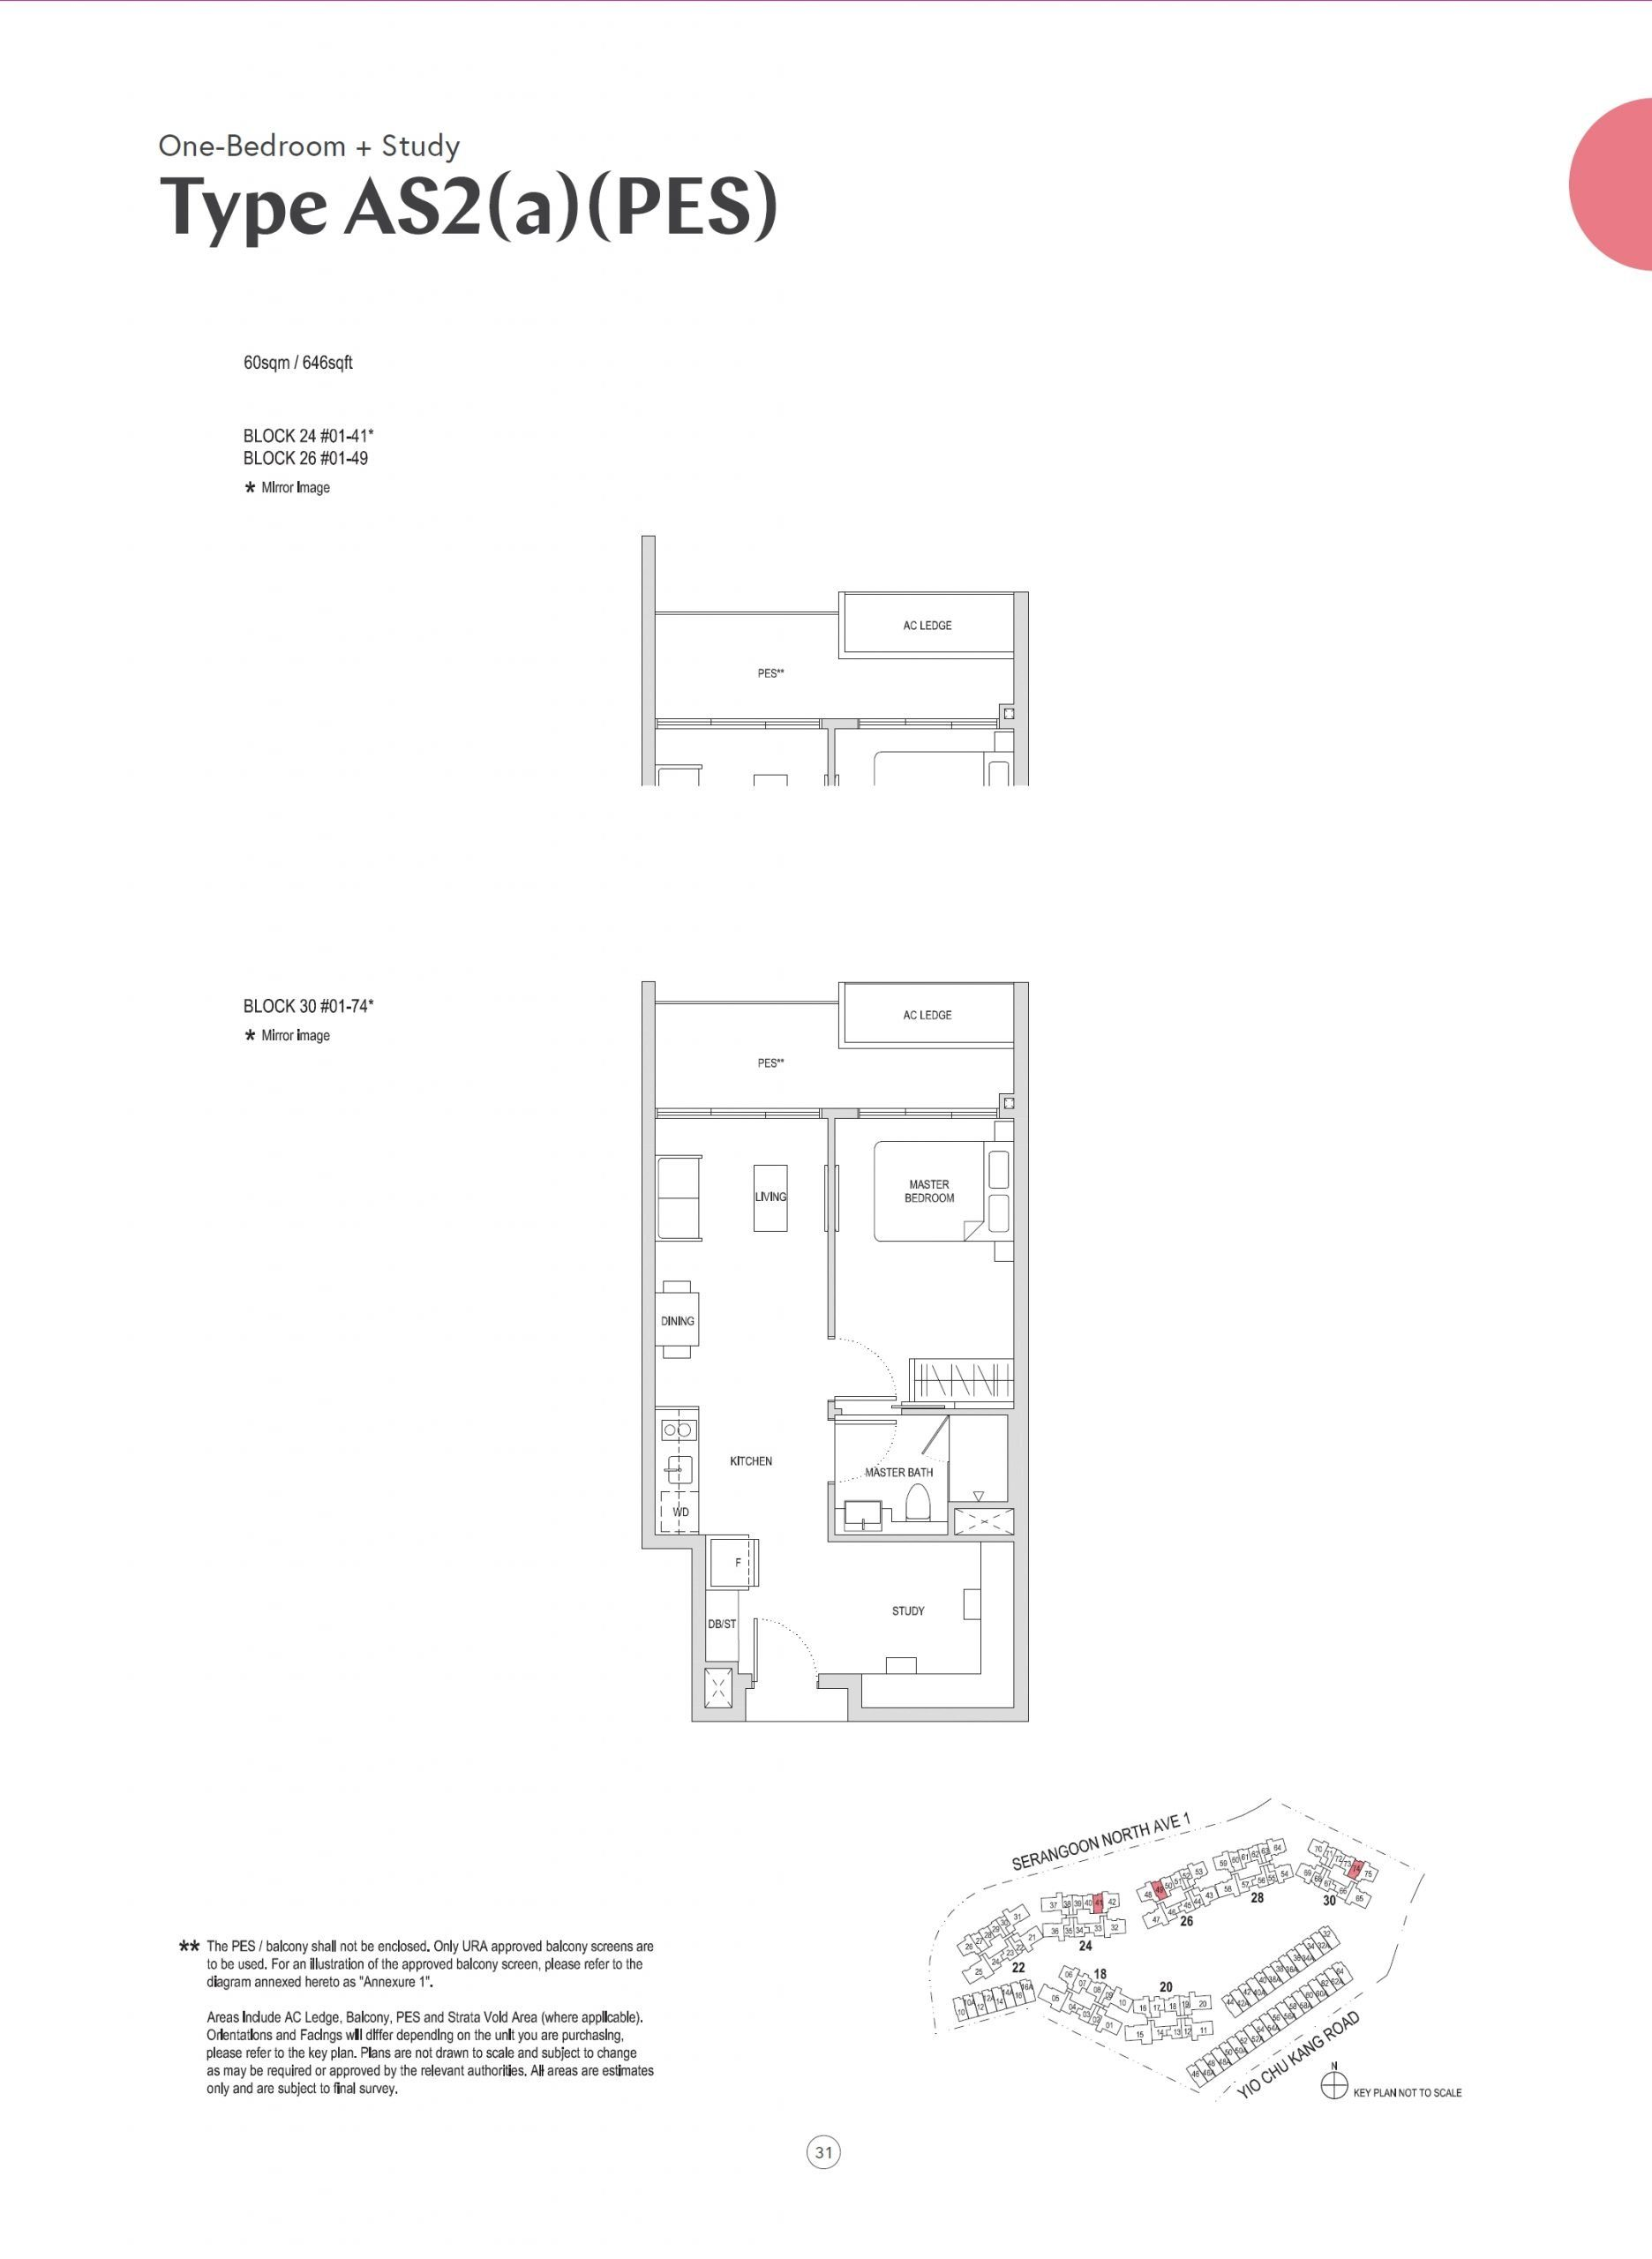 Affinity at Serangoon 1 Bedroom AS2 a PES scaled